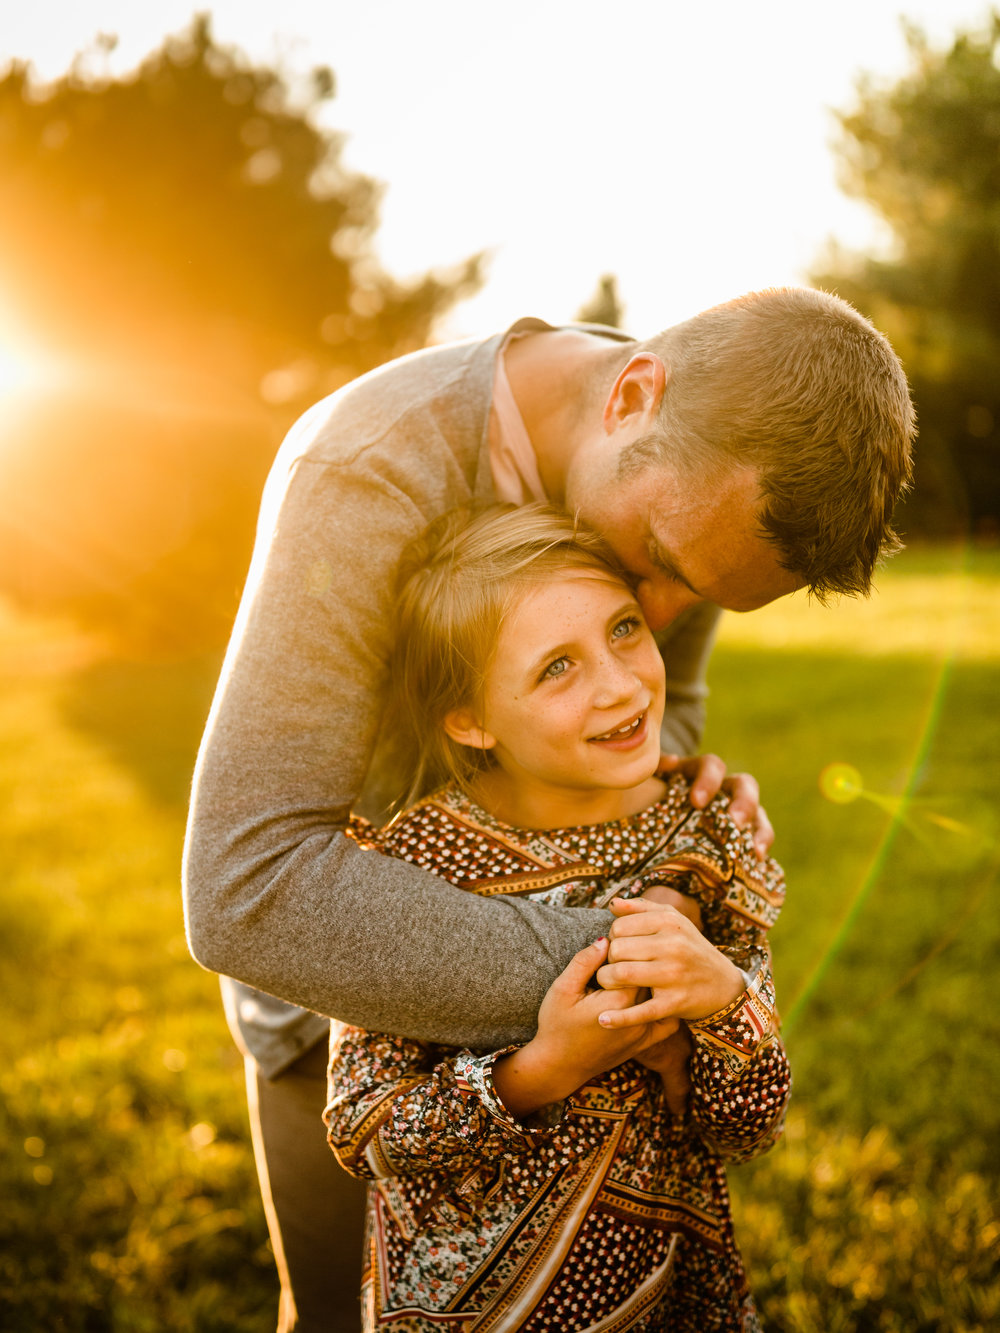 CHICAGO FAMILY LIFESTYLE OUTDOOR PHOTOGRAPHER JENNY GRIMM PHOTOGRAPHY GOLDEN HOUR DADDY DAUGHTER MOMENT